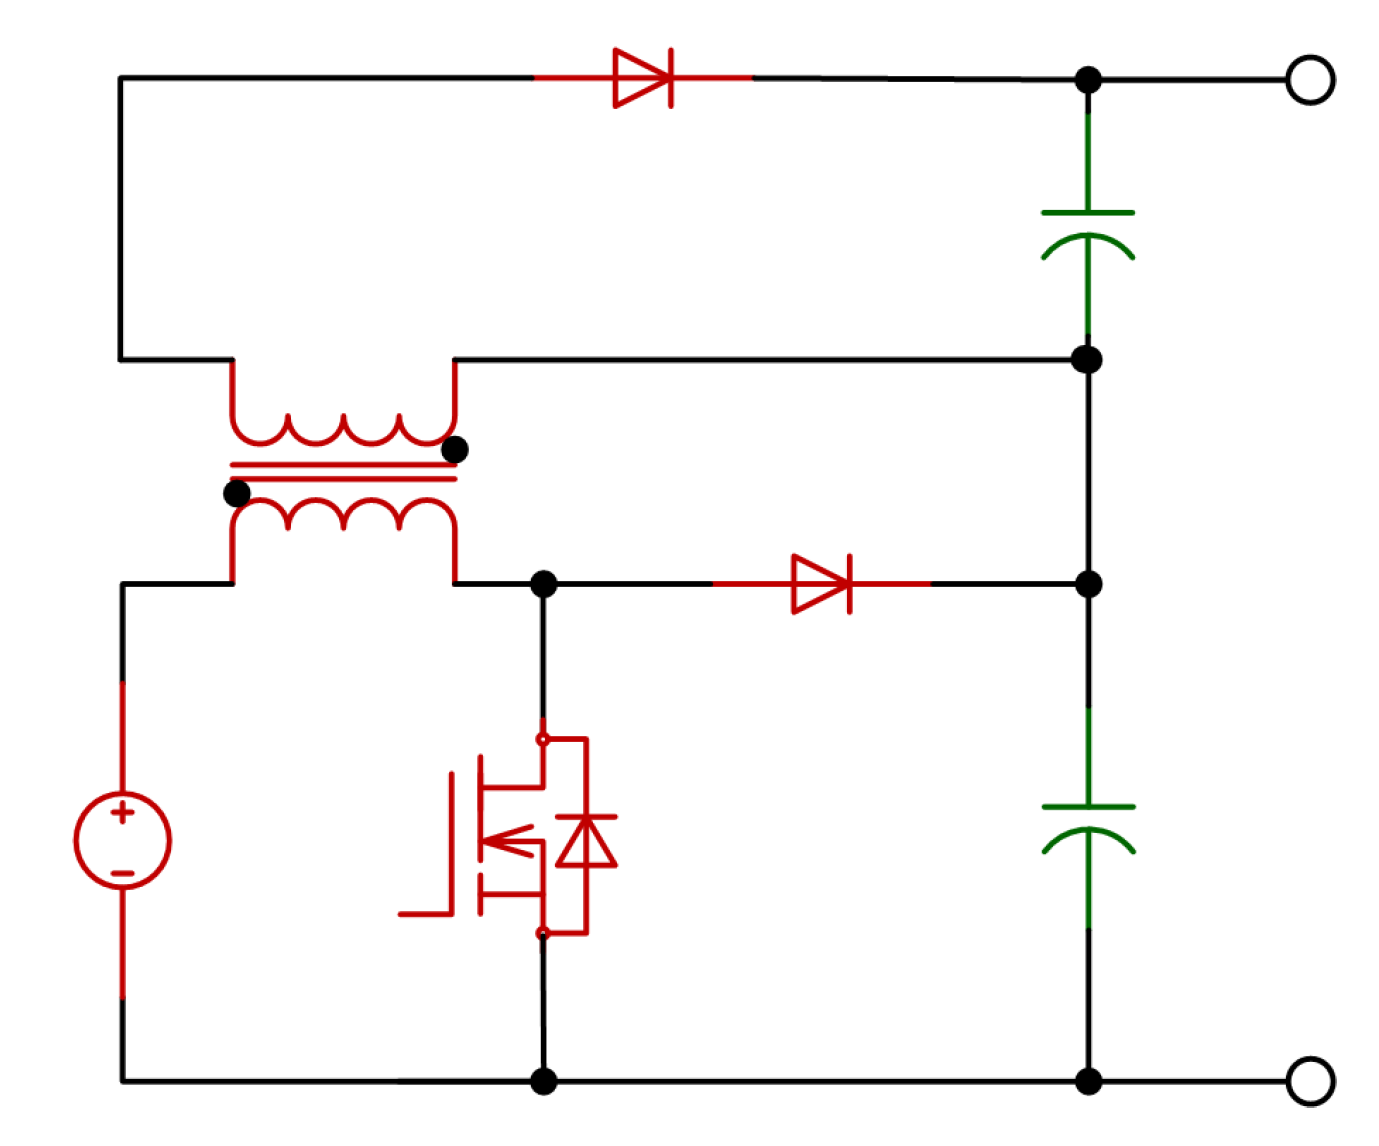 Energies Free Full Text High Step Up 3 Phase Rectifier With Fly Efficient Regulated Stepup Converter Circuit Diagram Tradeofic 08 02742 G007 1024